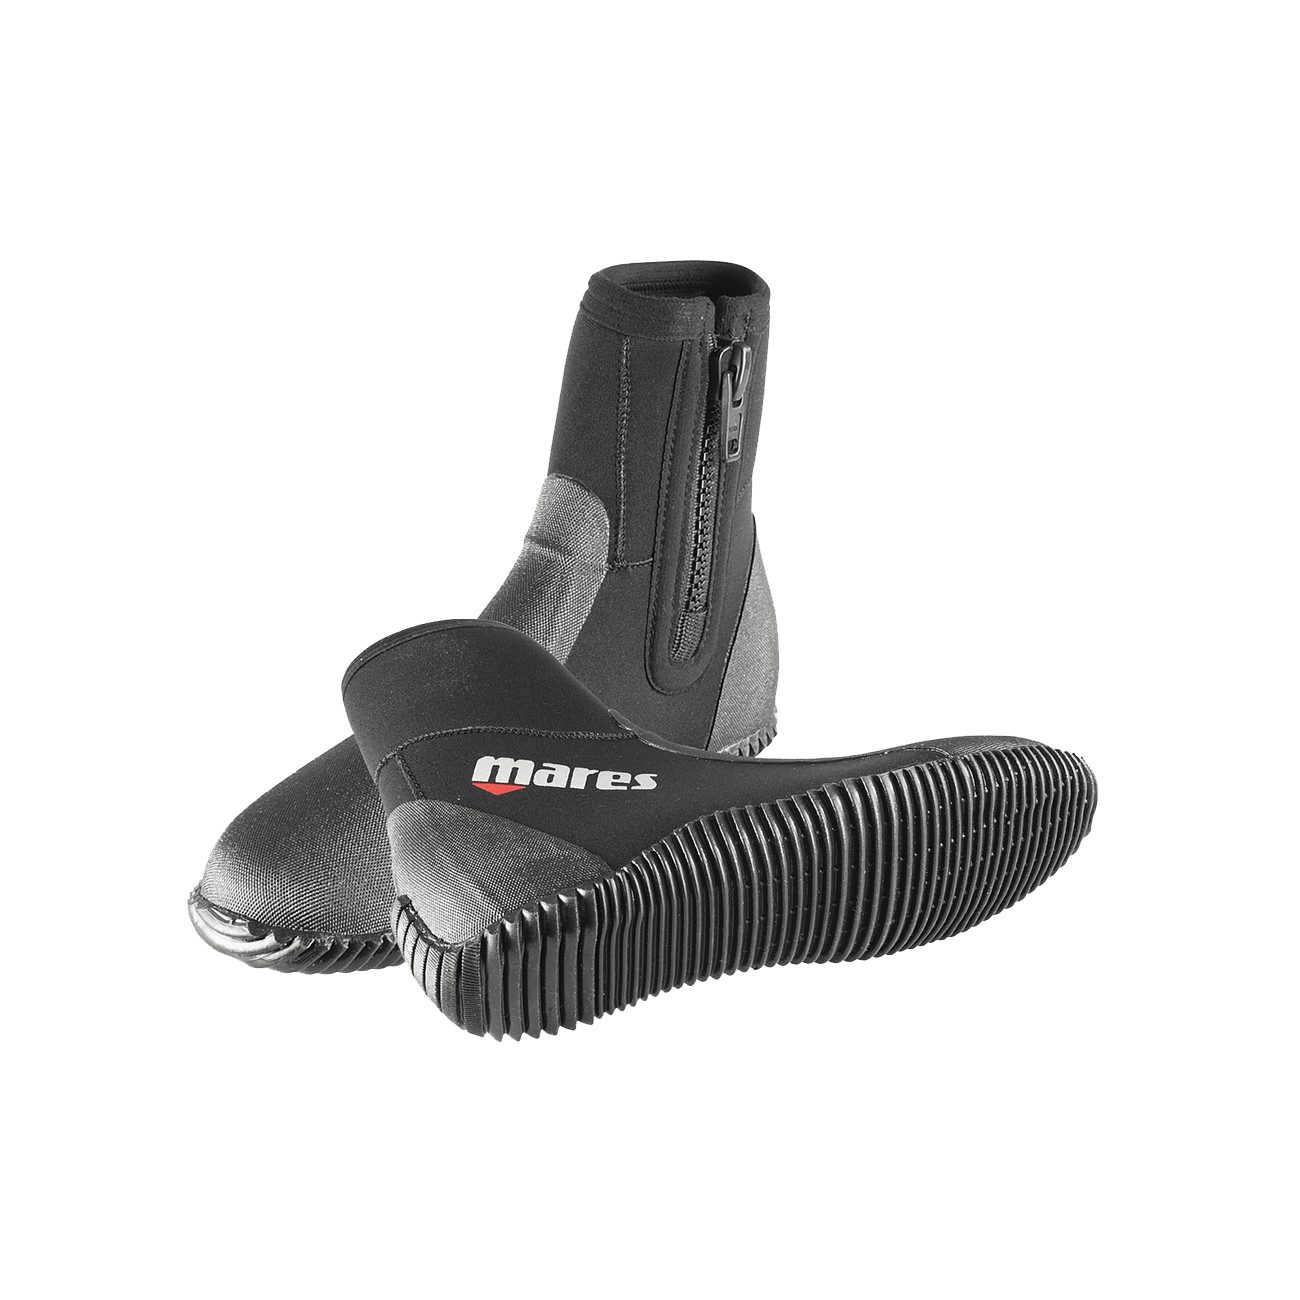 Mares Classic Ng Booties | Mares Booties | Gill Divers